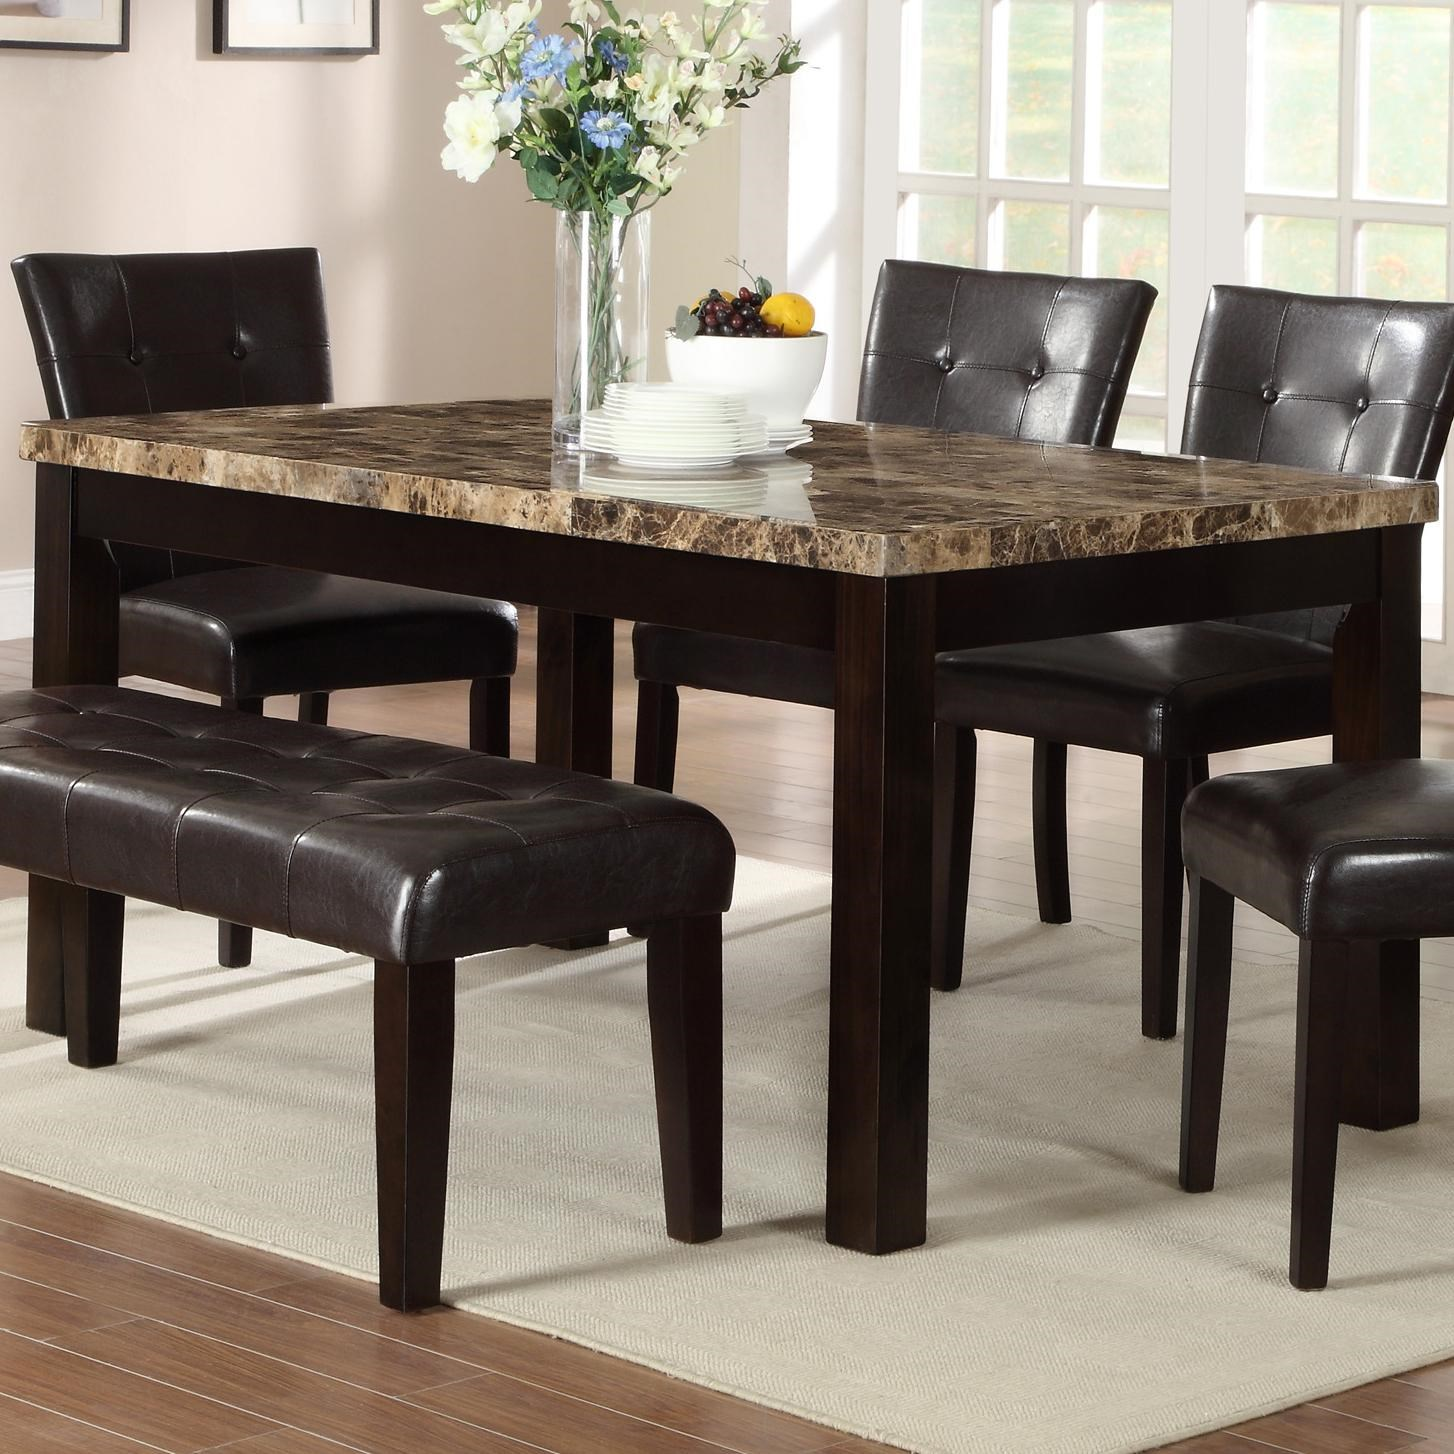 Crown Mark Bruce Rectangular Dining Table with Faux Marble  : products2Fcrownmark2Fcolor2Fbruce20 20 8291615812267t 3864 b0jpgscalebothampwidth500ampheight500ampfsharpen25ampdown from www.wayside-furniture.com size 500 x 500 jpeg 59kB